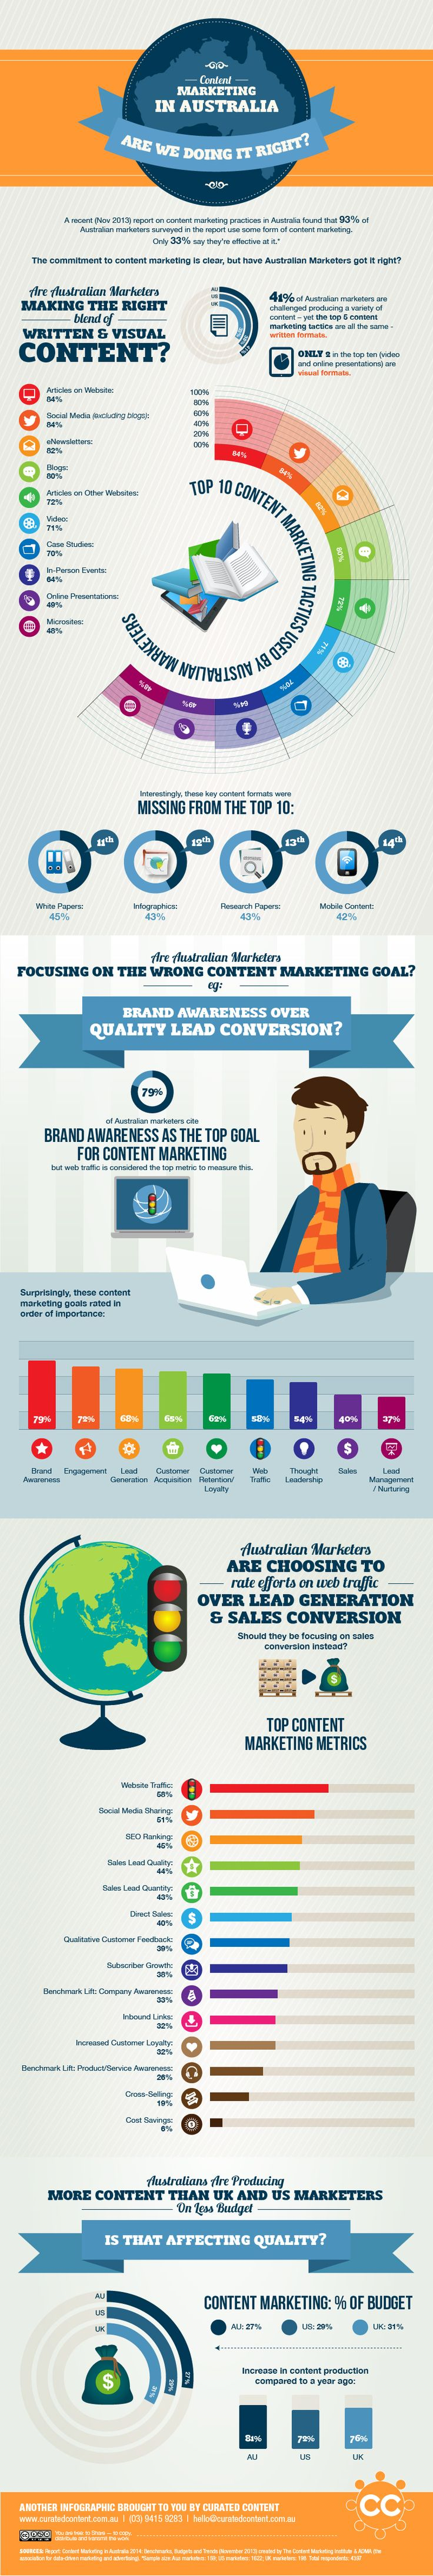 Content Marketing In Australia: Are We Doing It Right? #Infographic #ContentMarketing #Australia